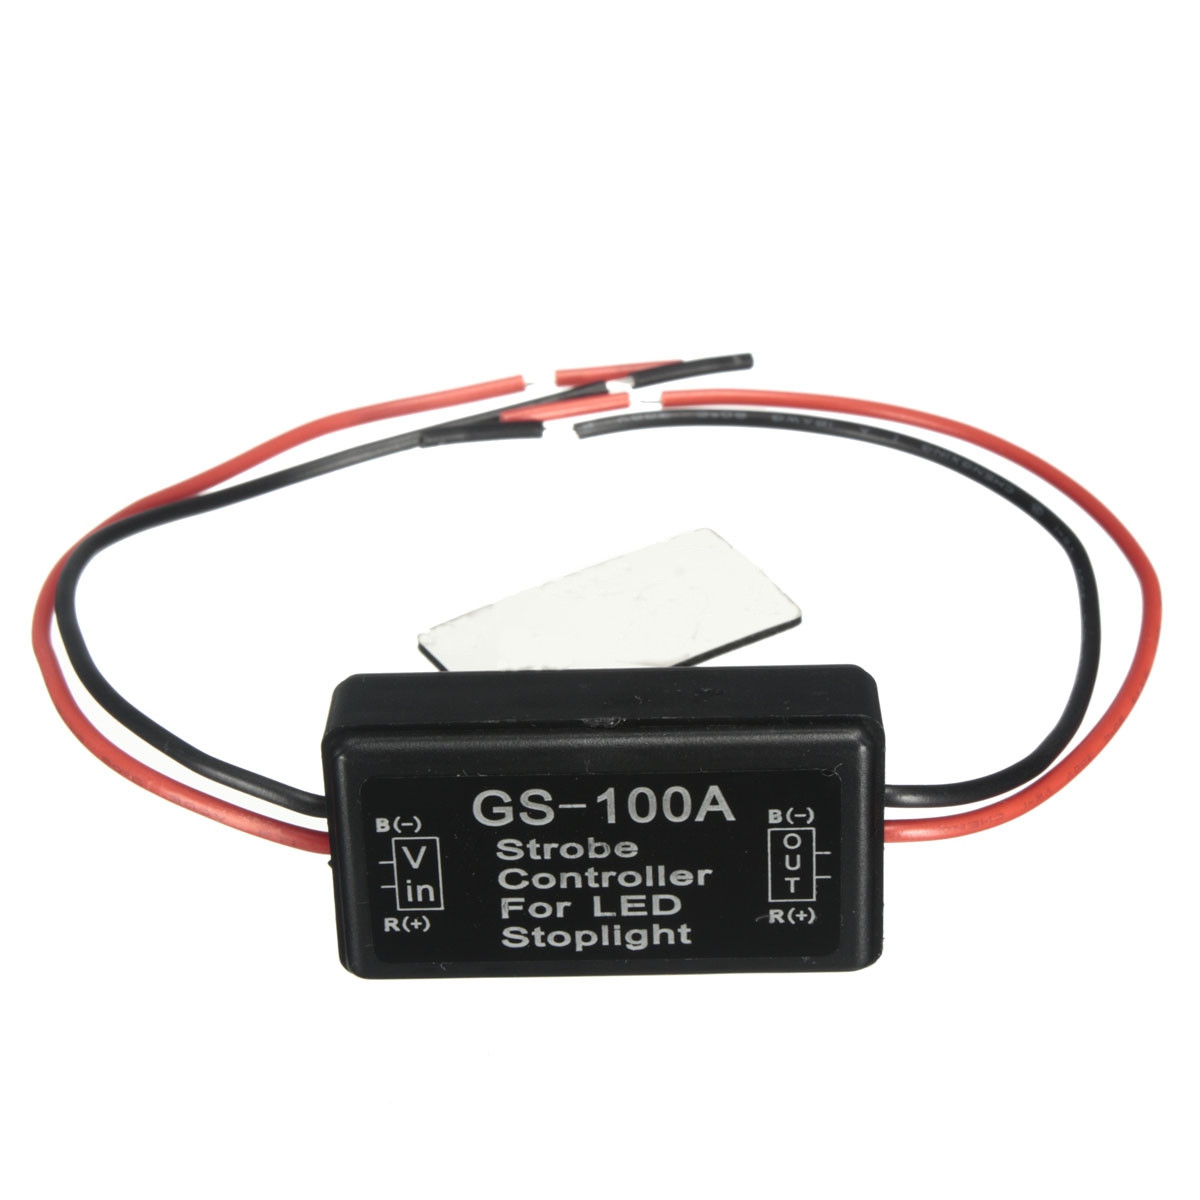 GS-100A Universal Car 12V LED Brake Stop Light Strobe Controller Flash Module